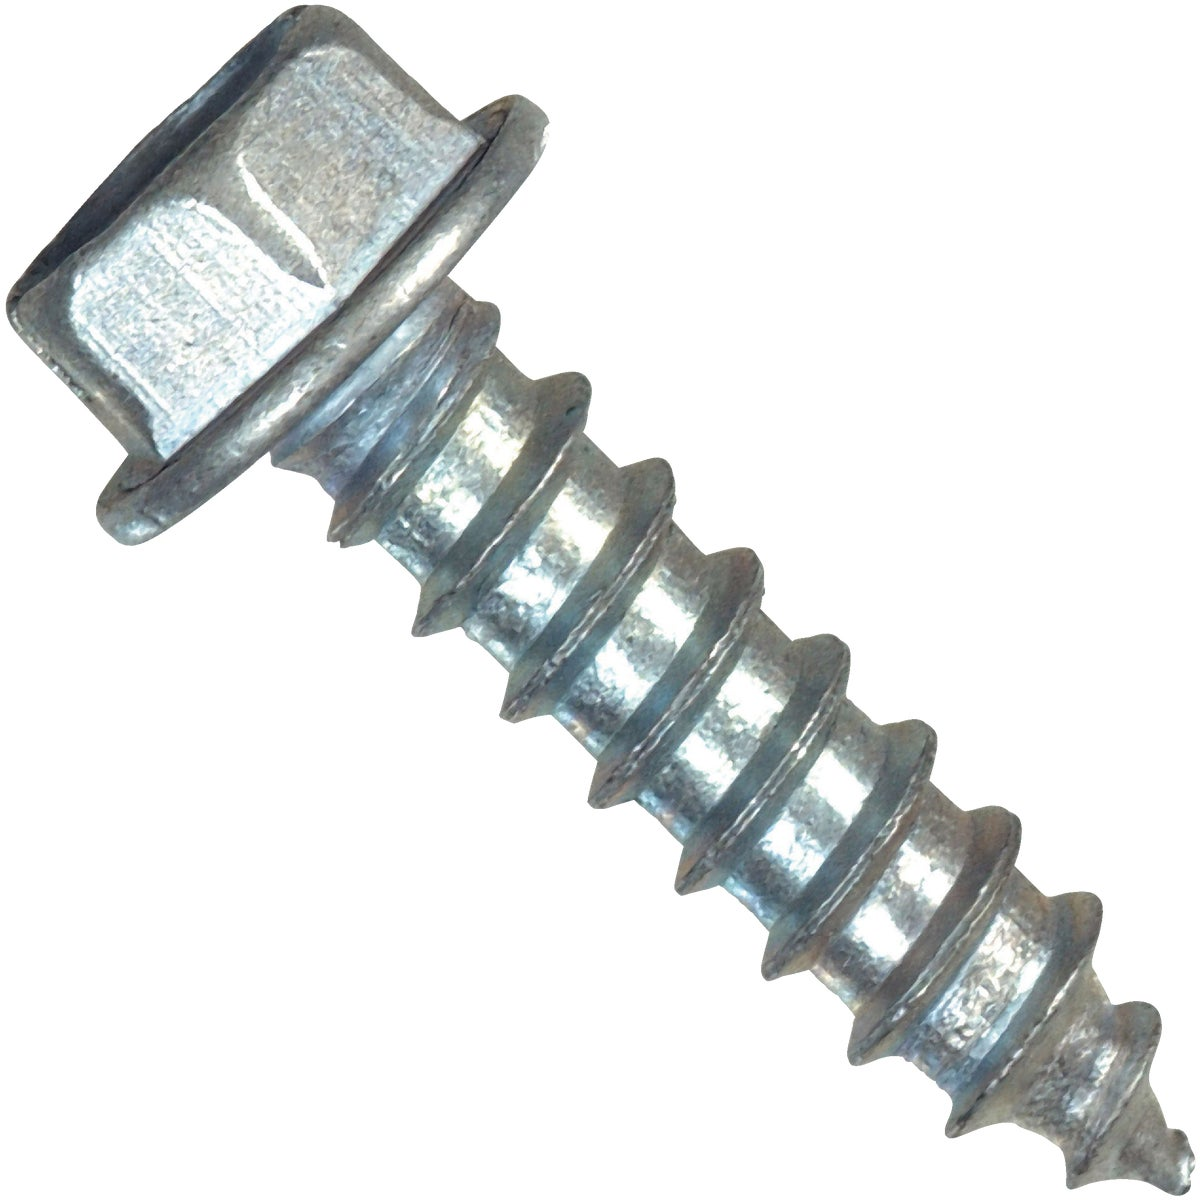 12X1-1/2 HWH ST MT SCREW